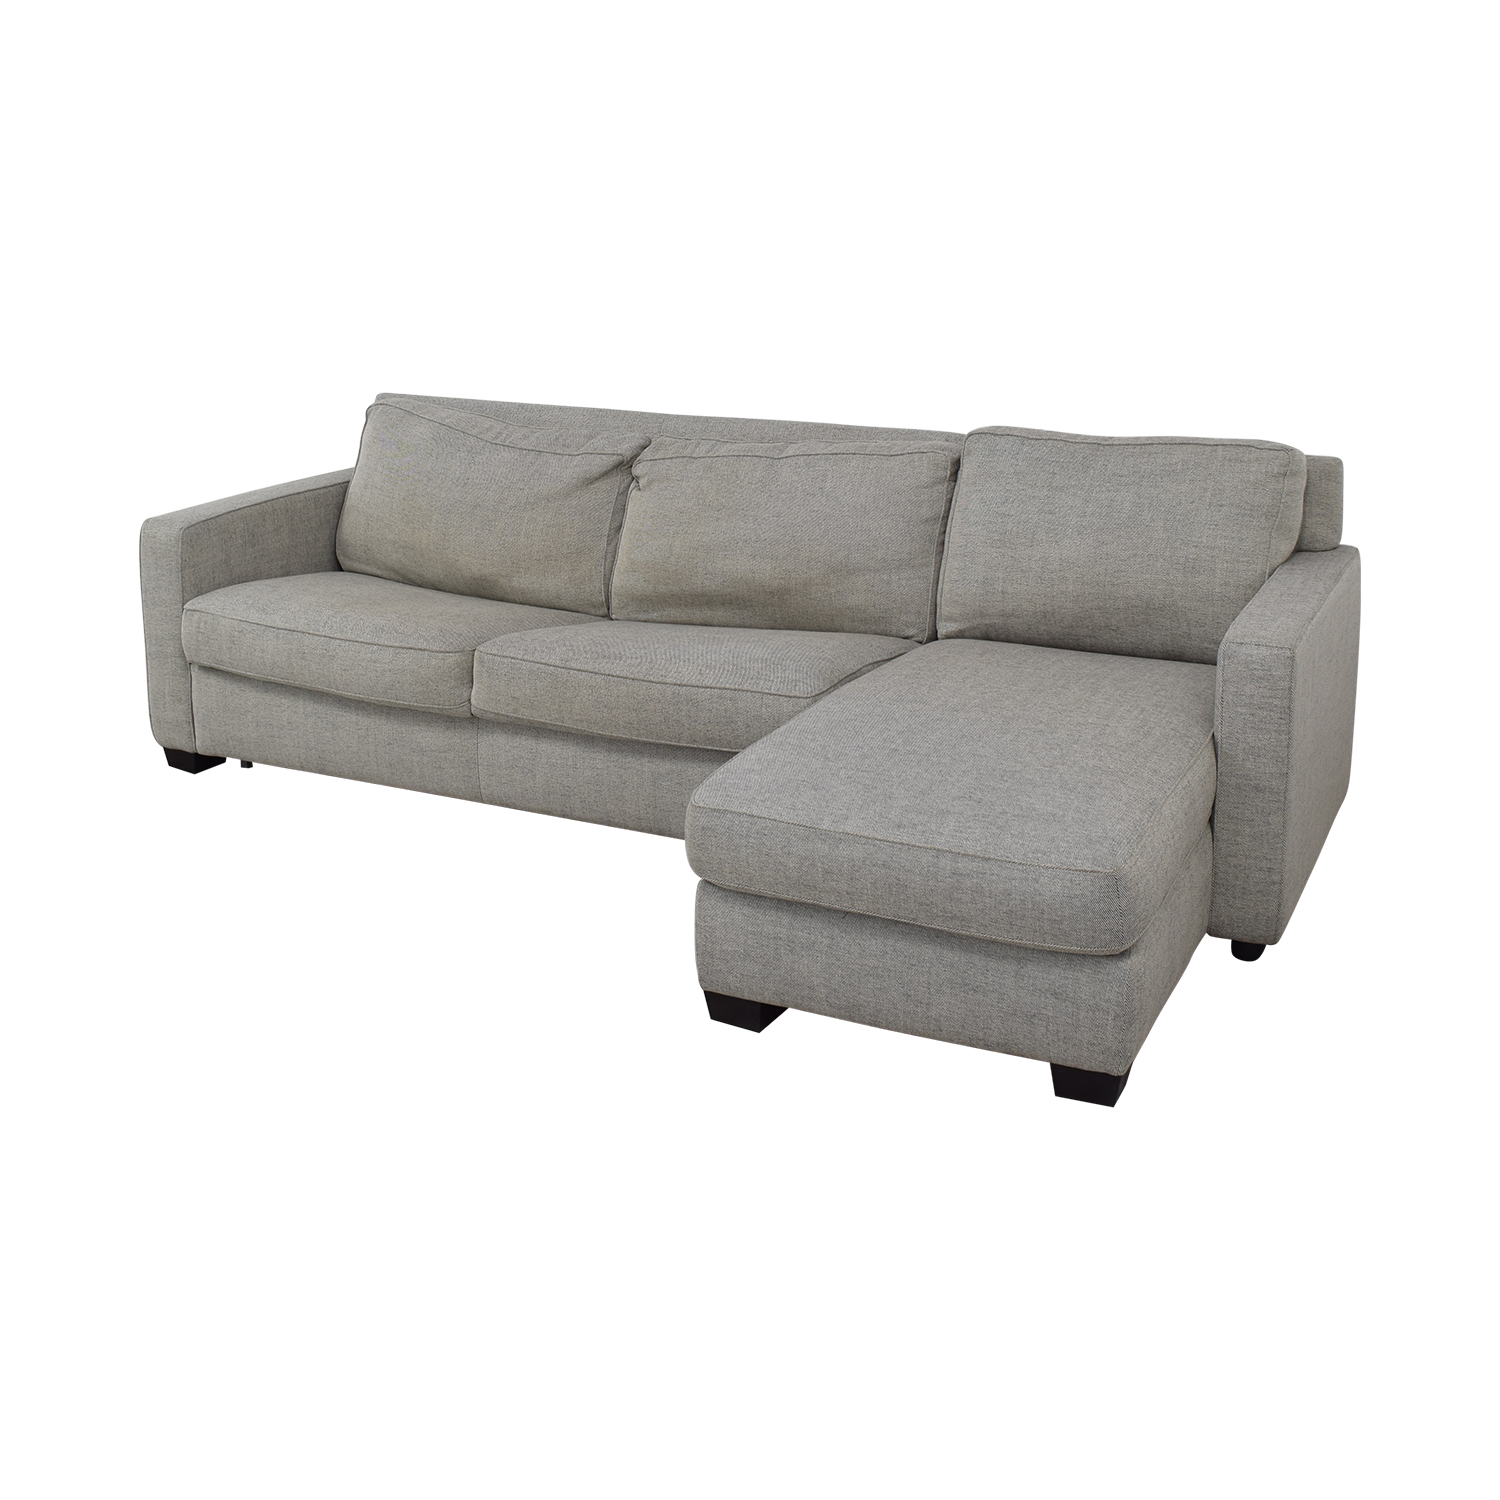 West Elm West Elm Henry Sectional Sleeper Sofa second hand